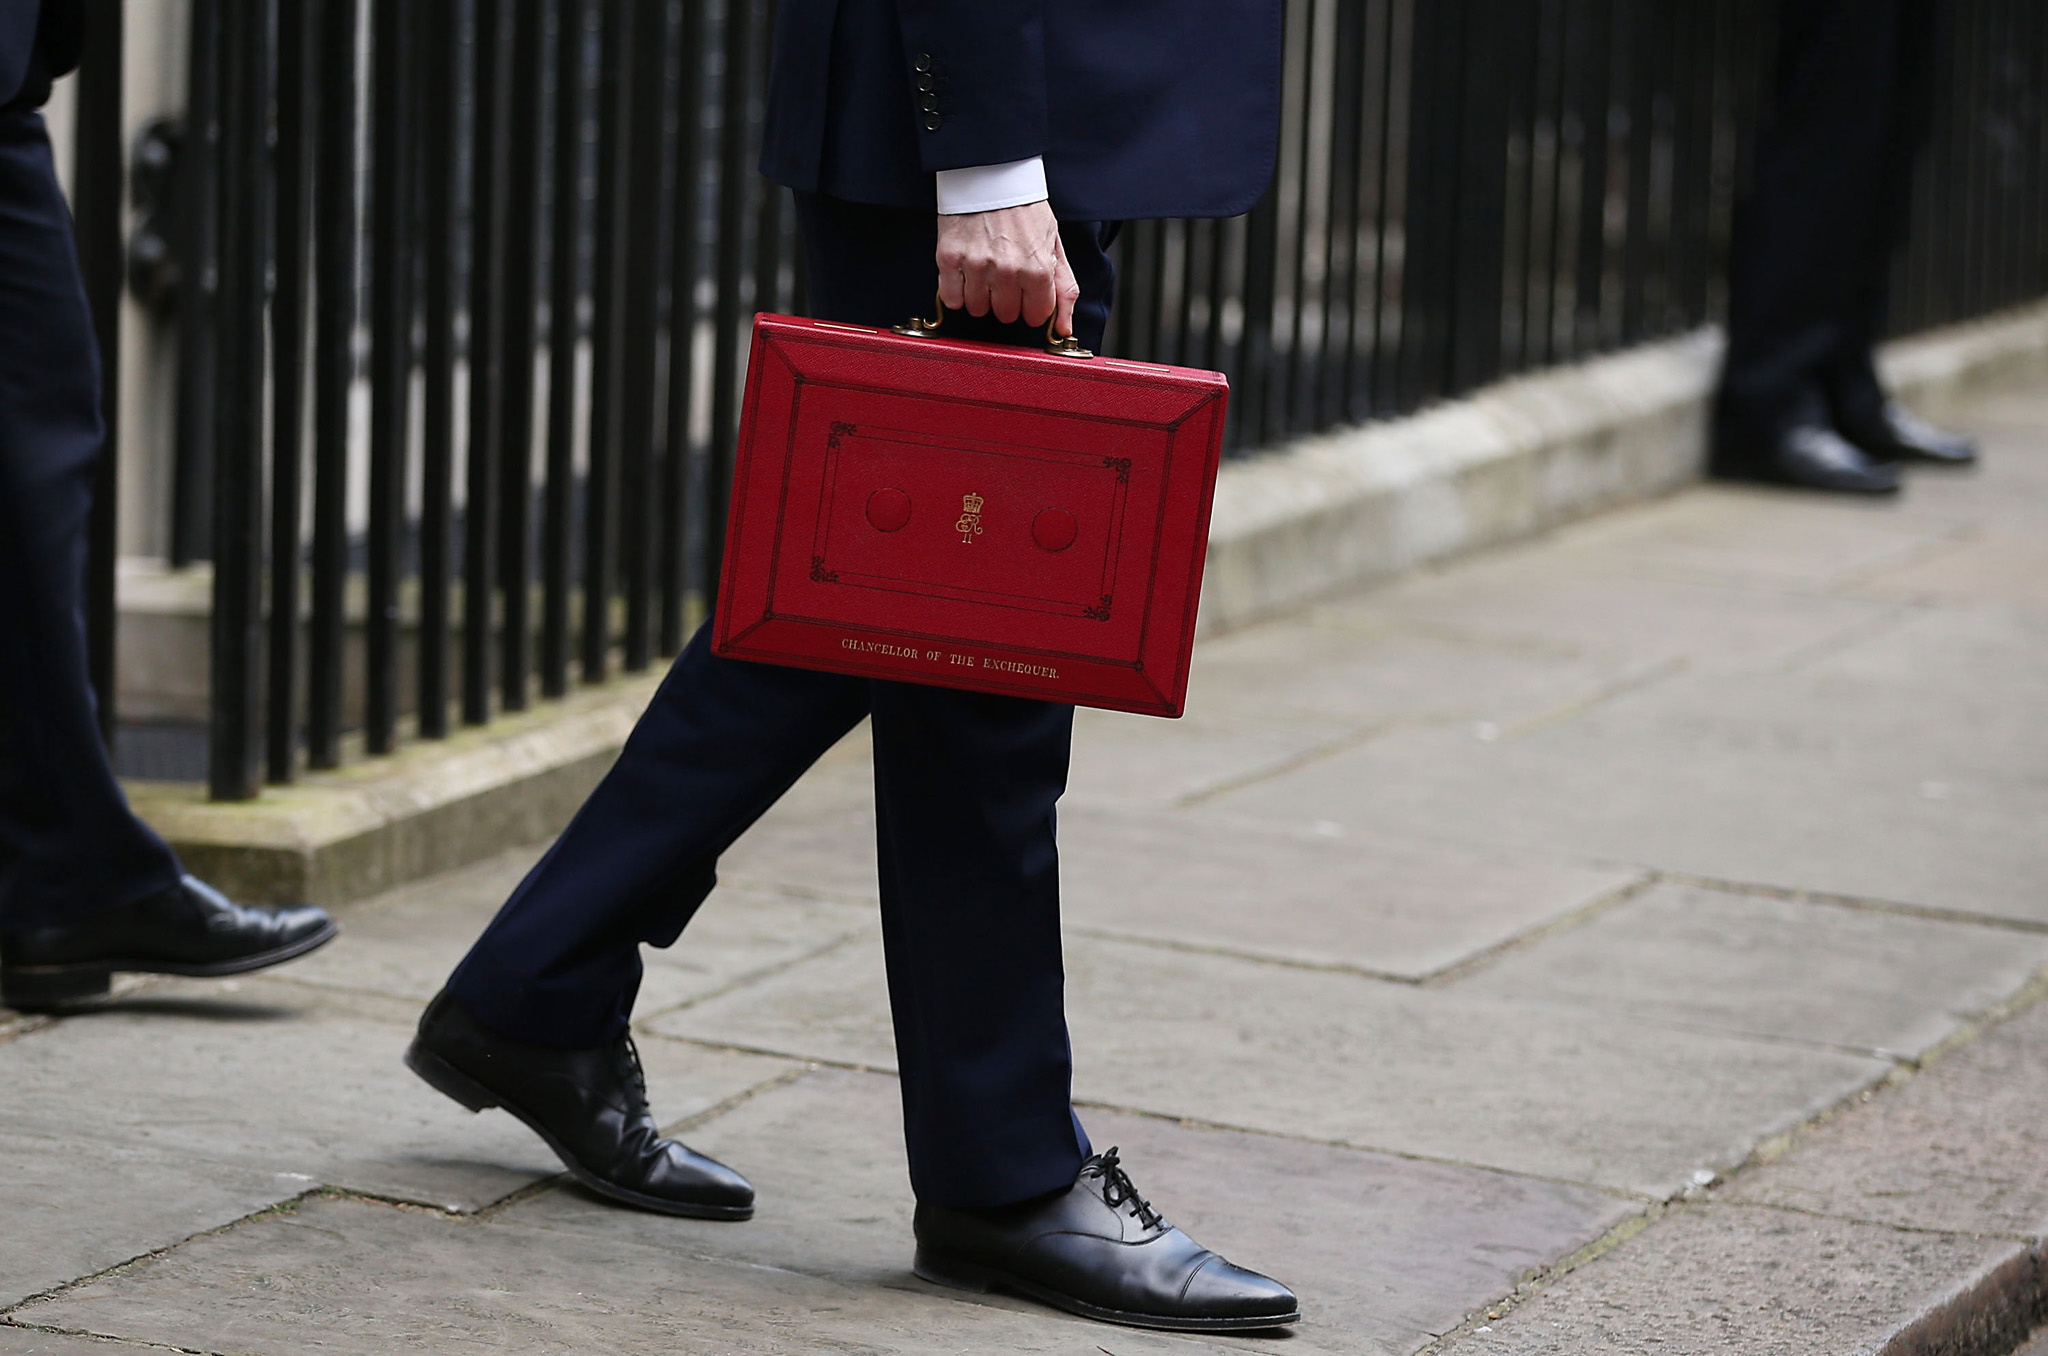 George Osborne Presents The 2016 Budget Statement To The House Of Commons...LONDON, ENGLAND - MARCH 16:  British Chancellor of the Exchequer, George Osborne carries the Budget Box outside 11 Downing Street on March 16, 2016 in London, England. Today's budget will set the expenditure of the public sector for the year beginning on April 1st 2016 against the revenues gathered by HM Treasury.  (Photo by Dan Kitwood/Getty Images)